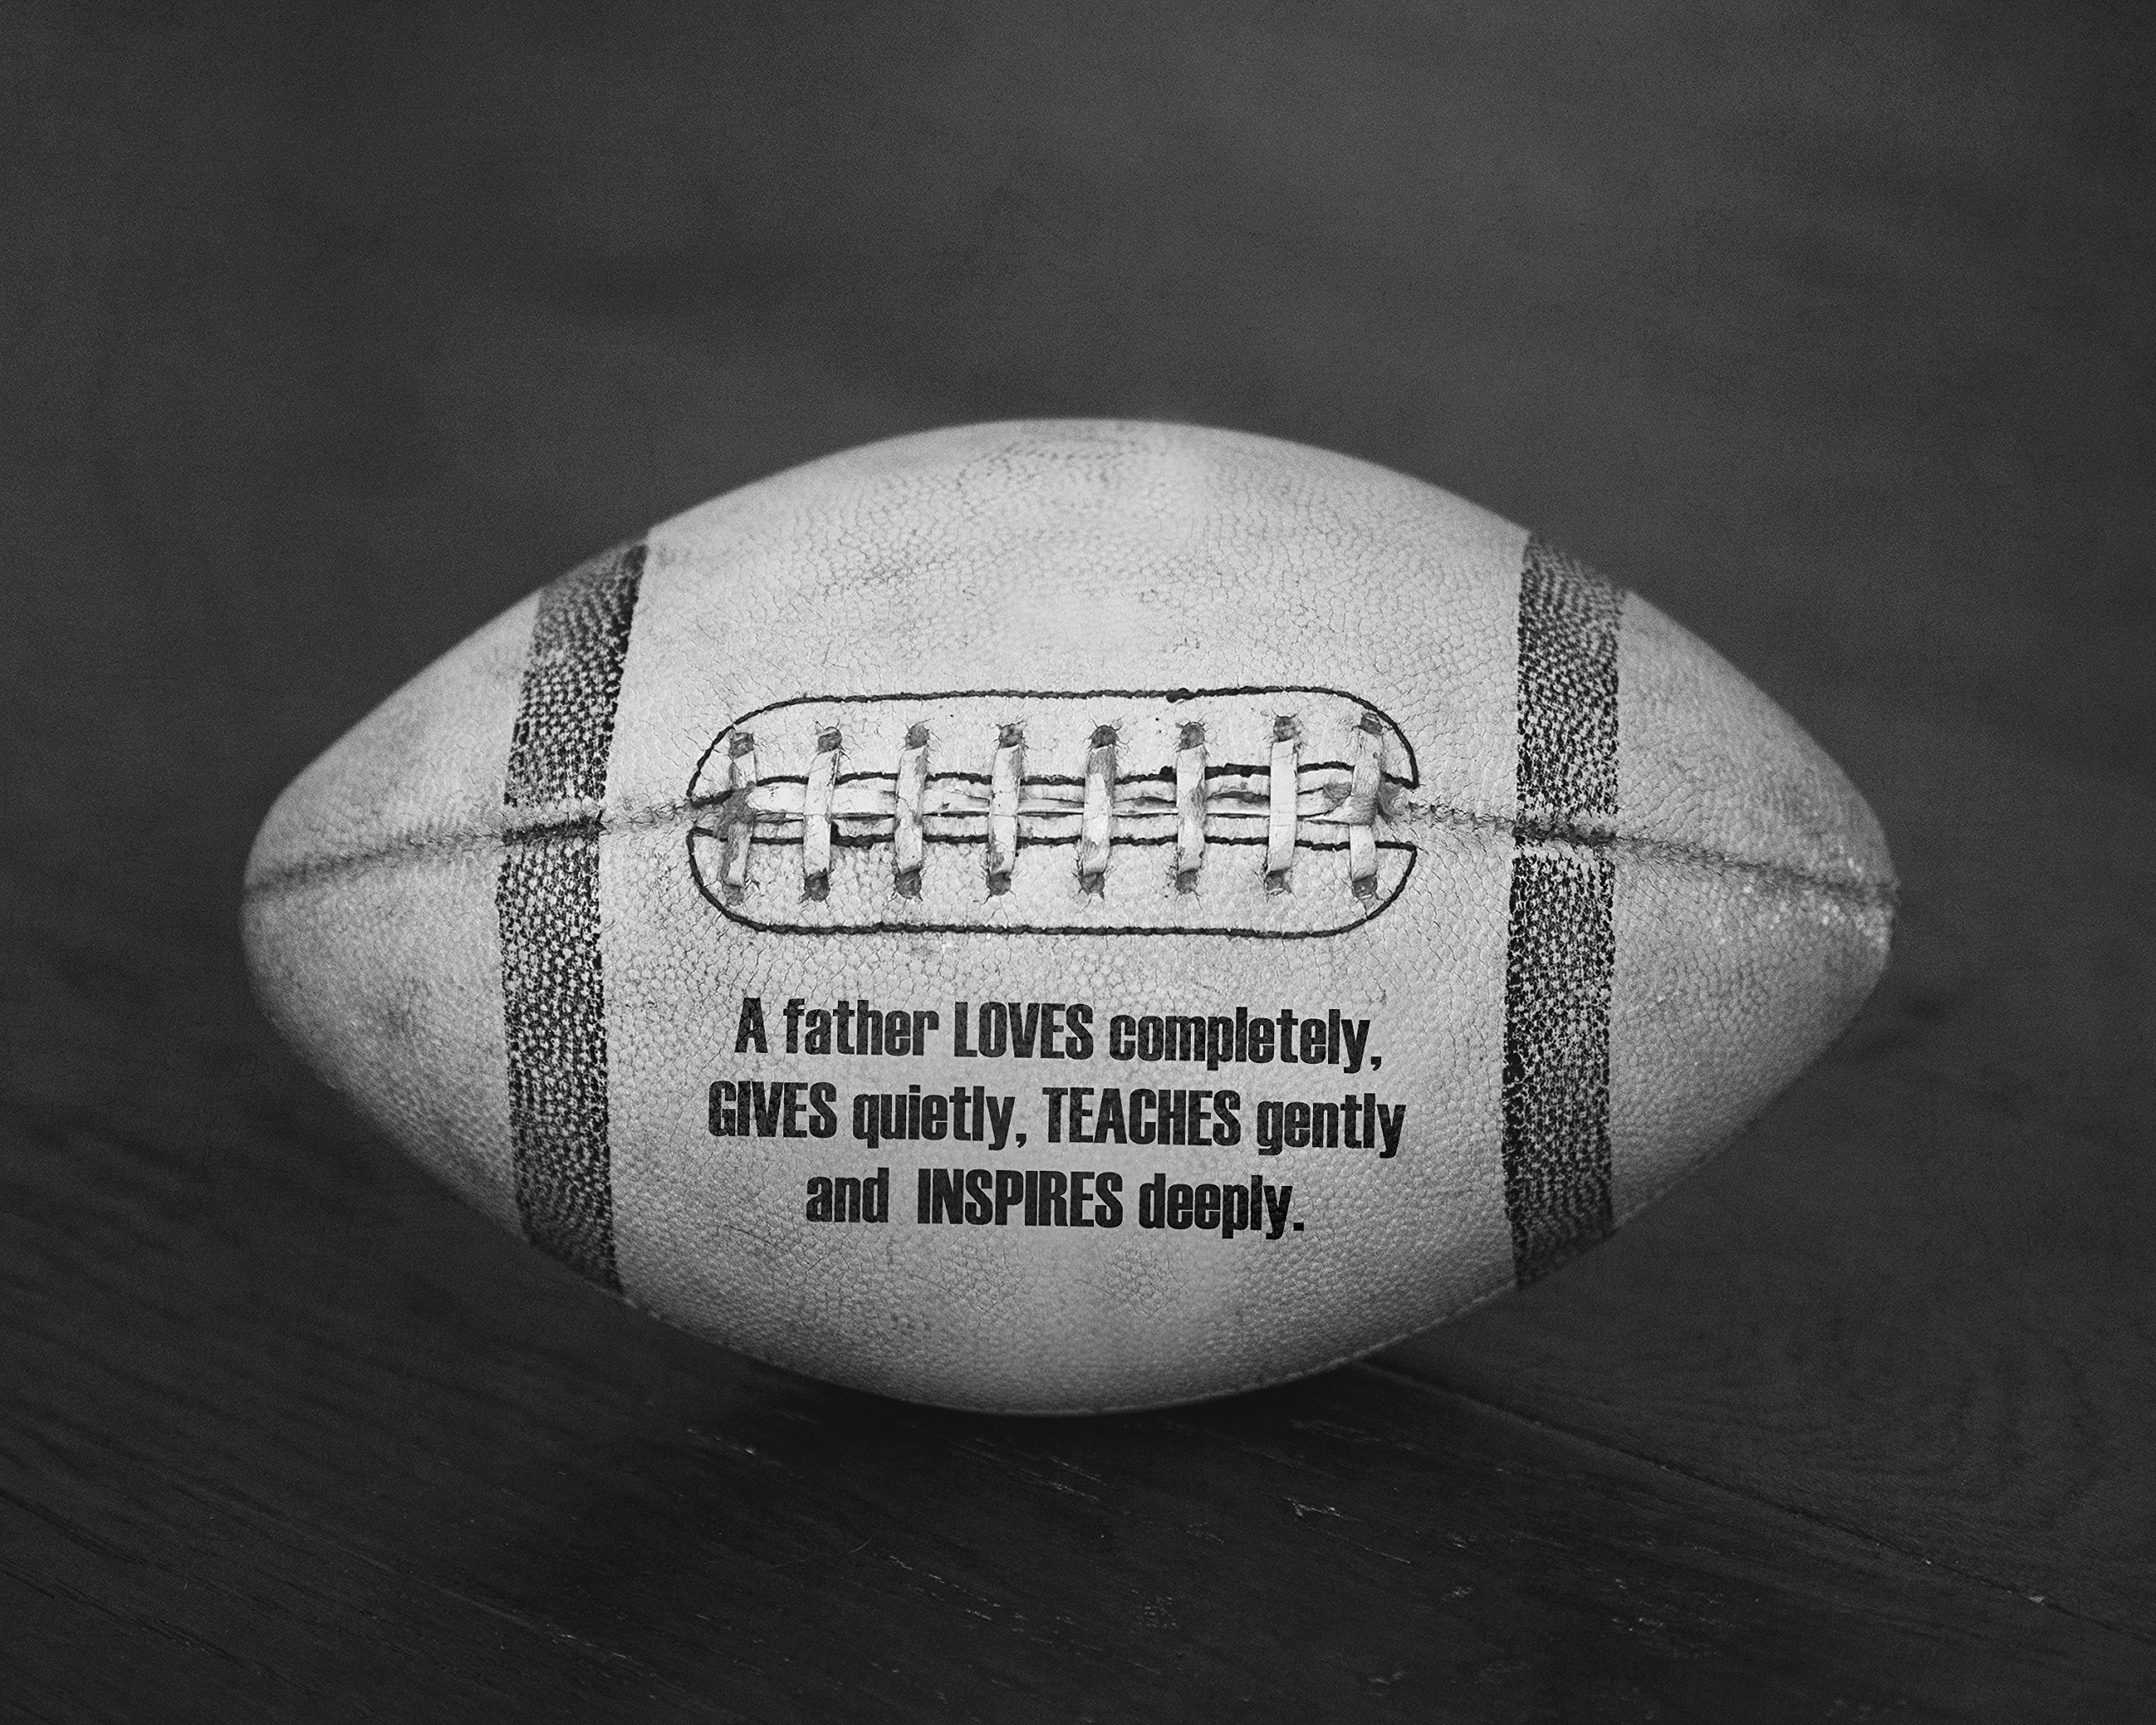 Black and White Football Sports Photograph Art Print with Father Love Poem Quote